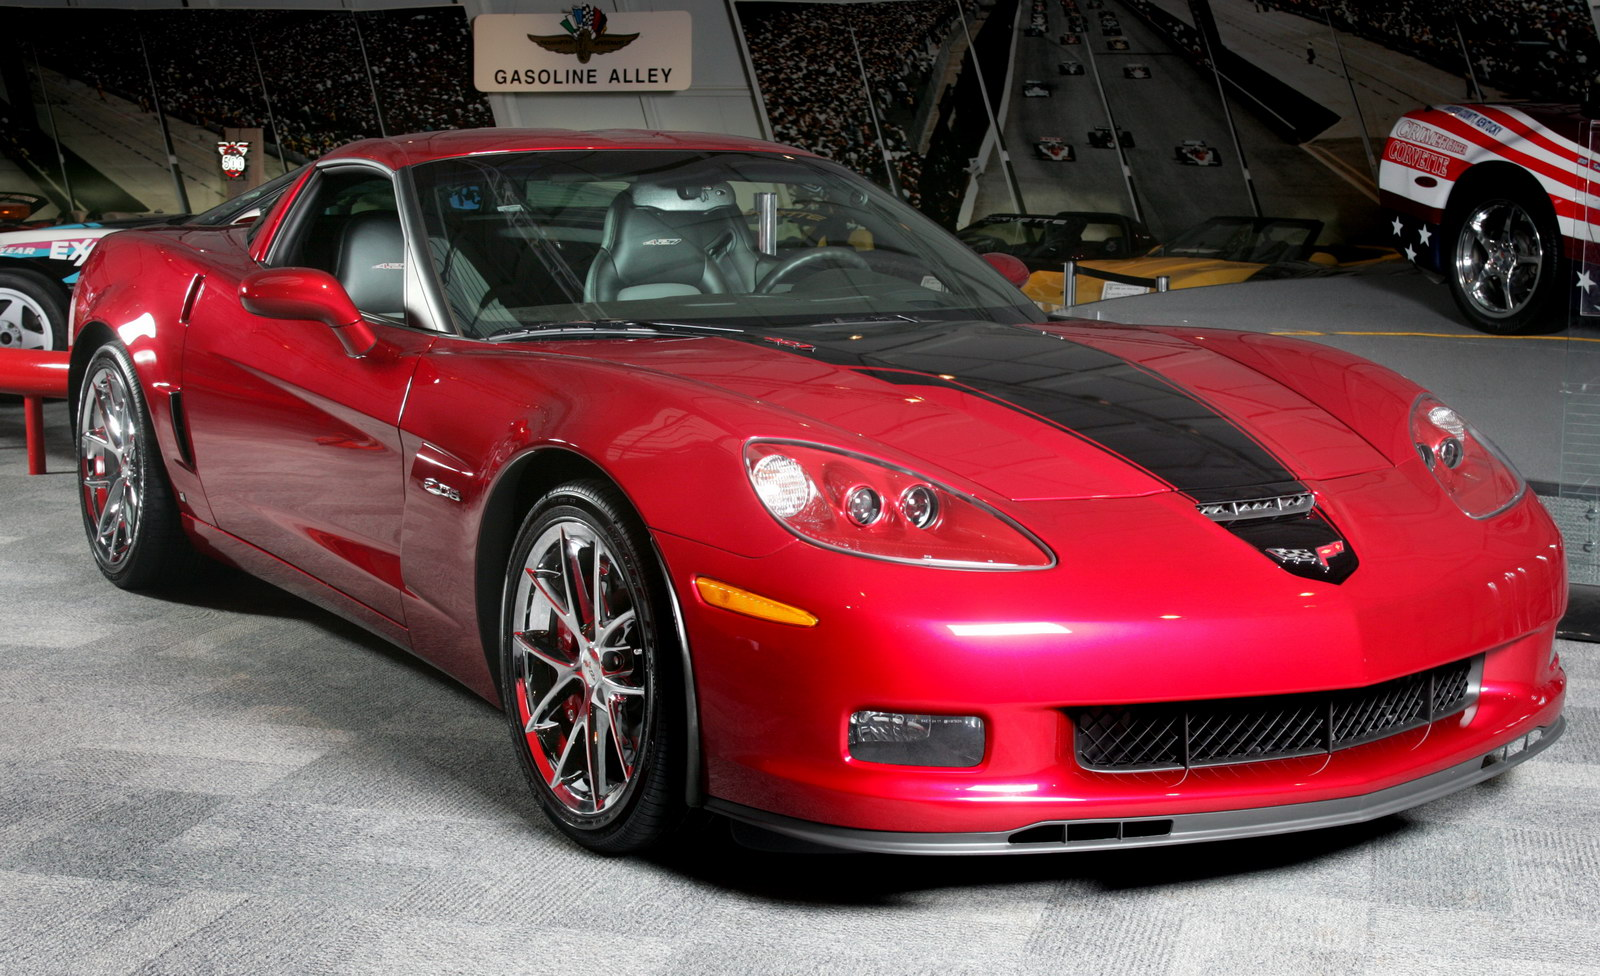 Chevrolet Corvette 427 Limited Edition Z06 Car Reviews Wallpaper For Iphone